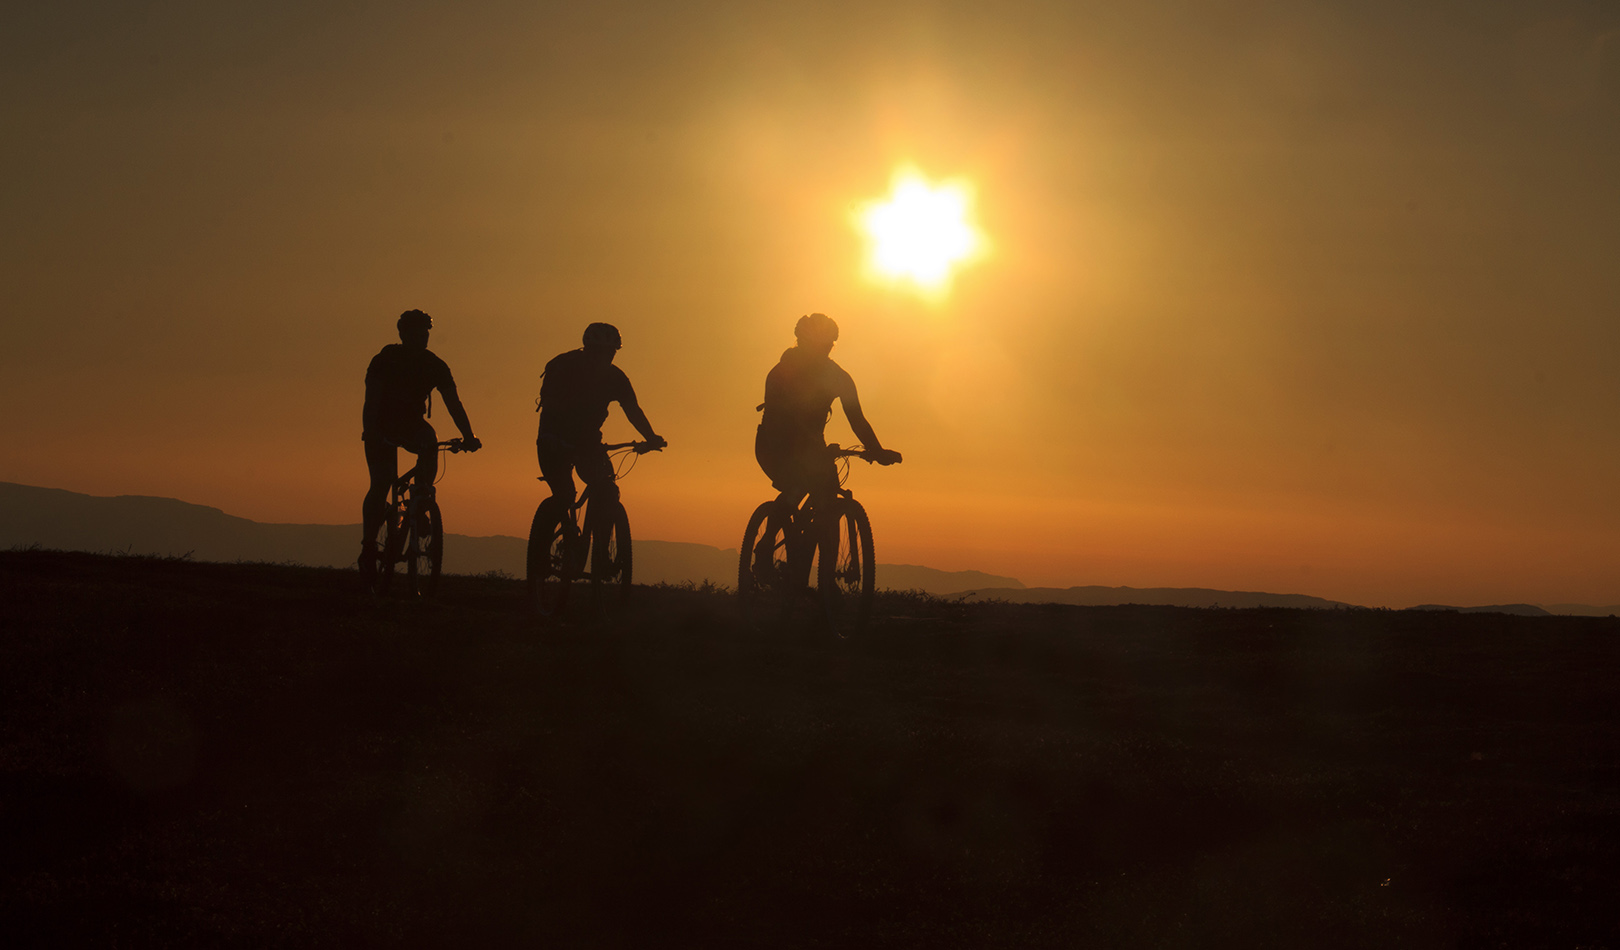 Silhouette of three cyclists on the Finnmark plateau in glowing midnight  sun.